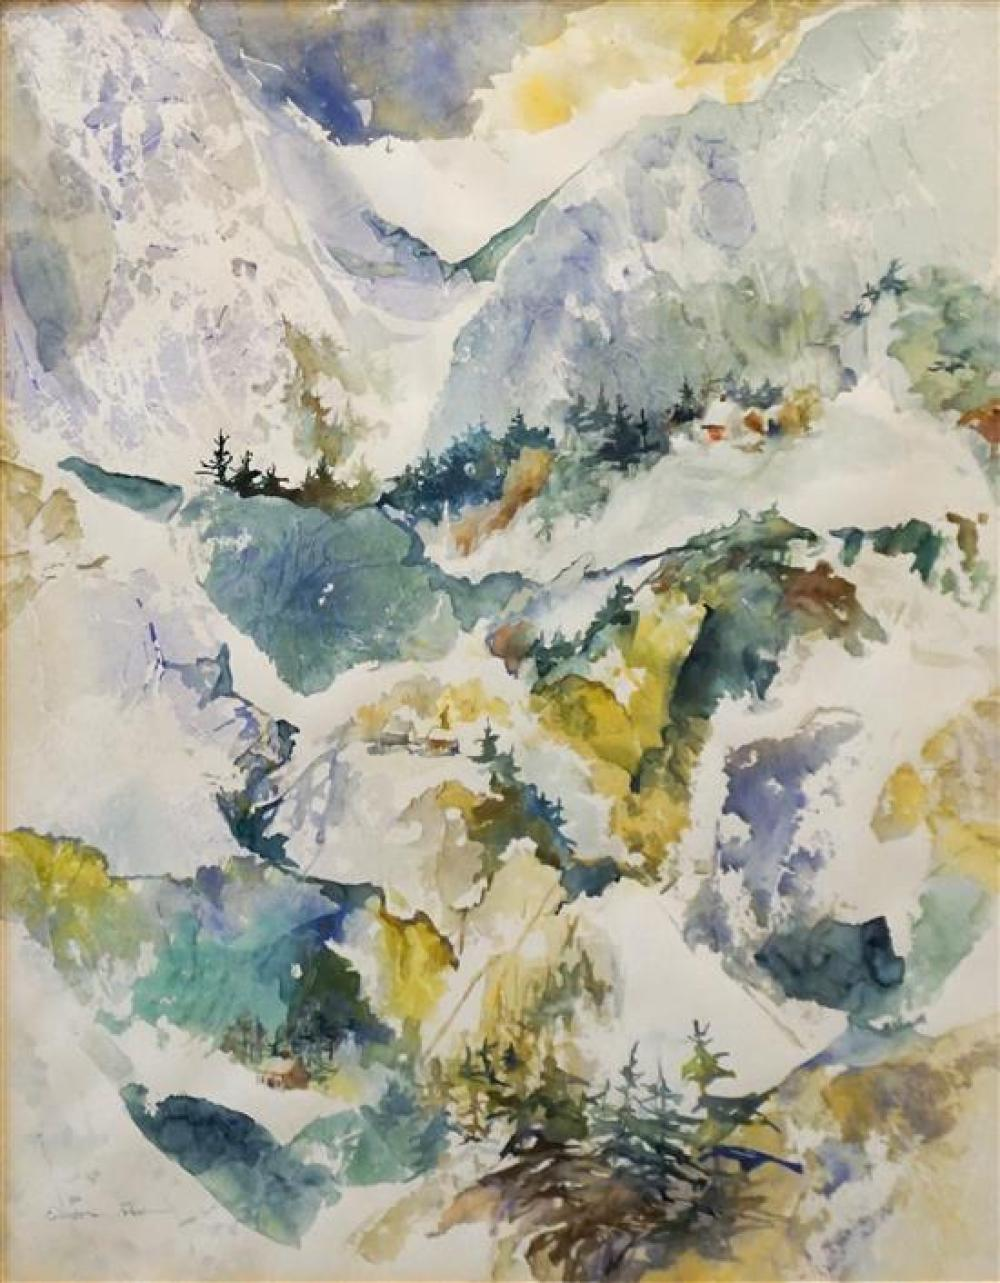 Elizabeth Pratt, Western Mountains and Cabins, Watercolor, Frame: 38 x 31-1/4 in